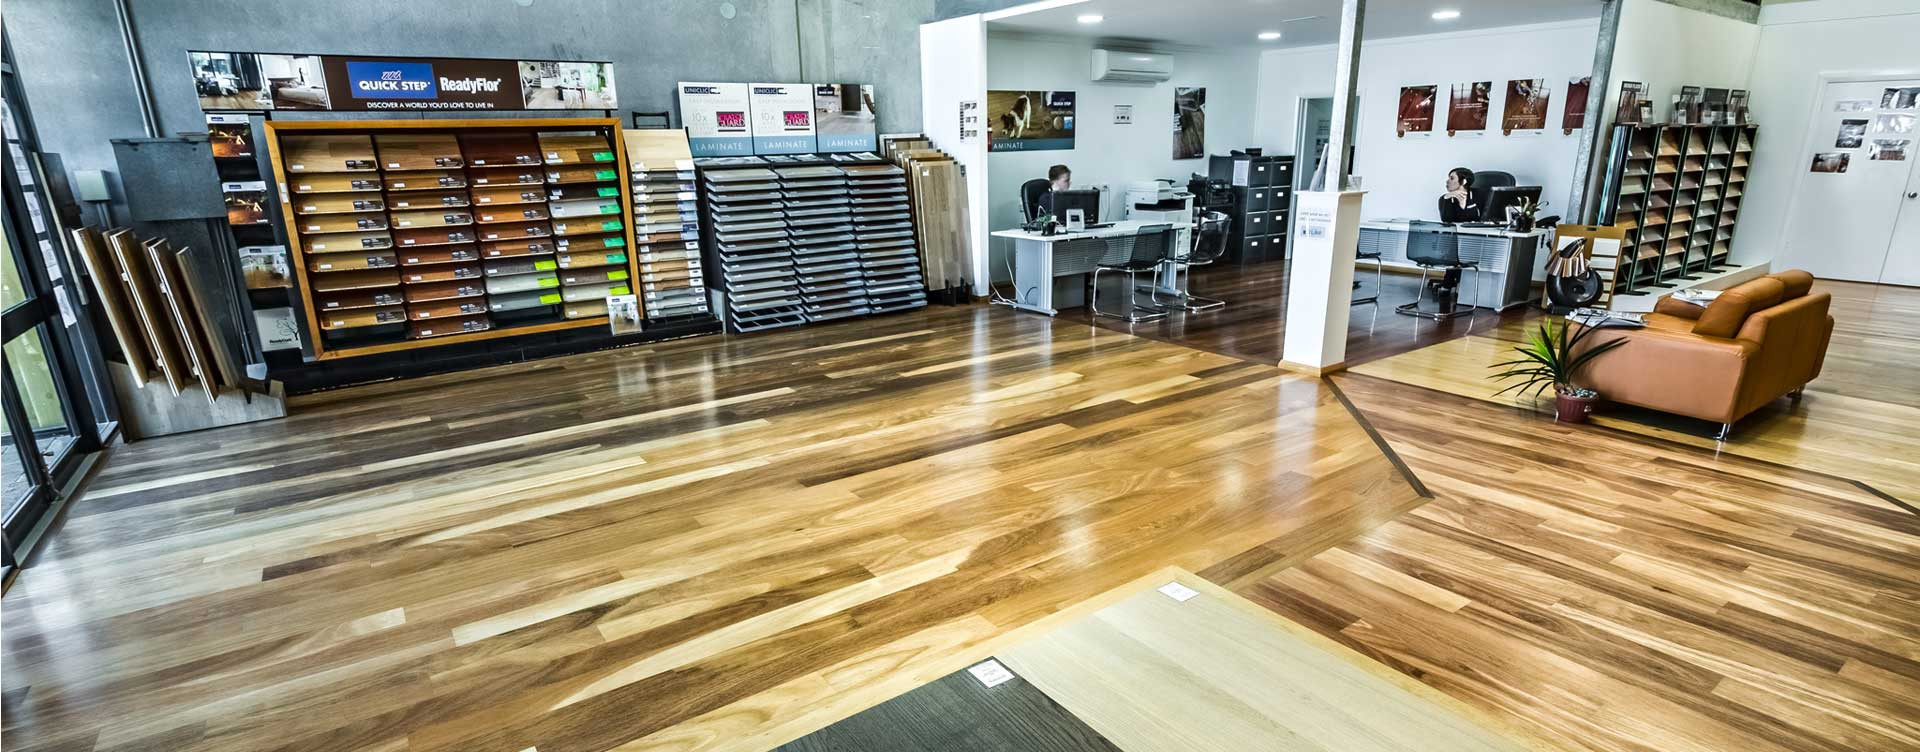 hardwood flooring glued to concrete of timber flooring perth coastal flooring wa quality wooden throughout thats why they call us the home of fine wood floors